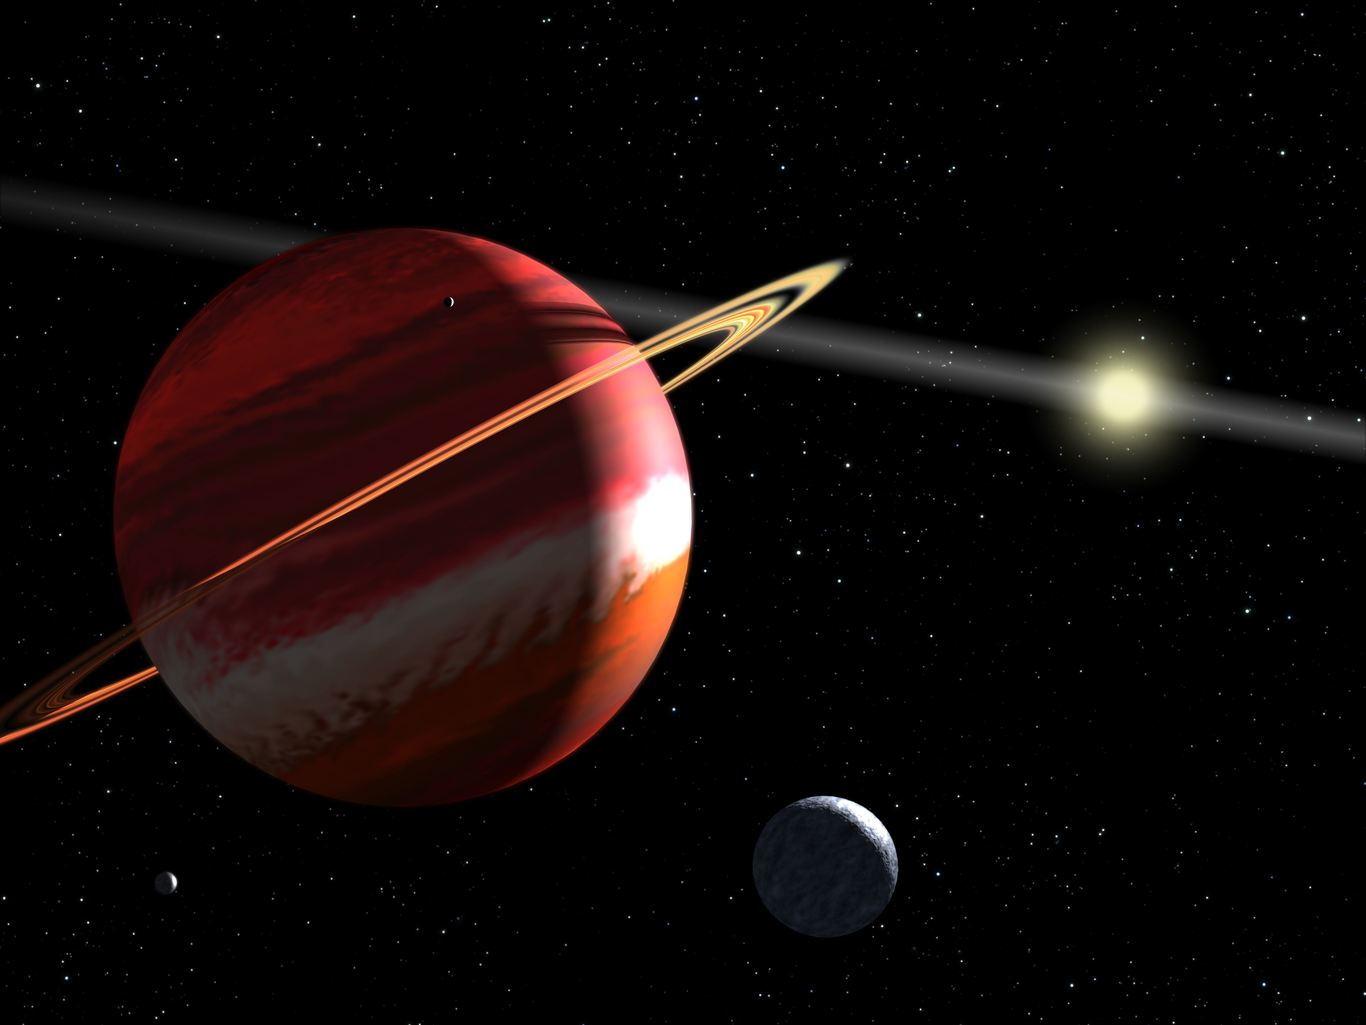 Artist's impression of Epsilon Eridani b, with the system's asteroid belt visible in the background. - Image Credit: NASA, ESA, G. Bacon